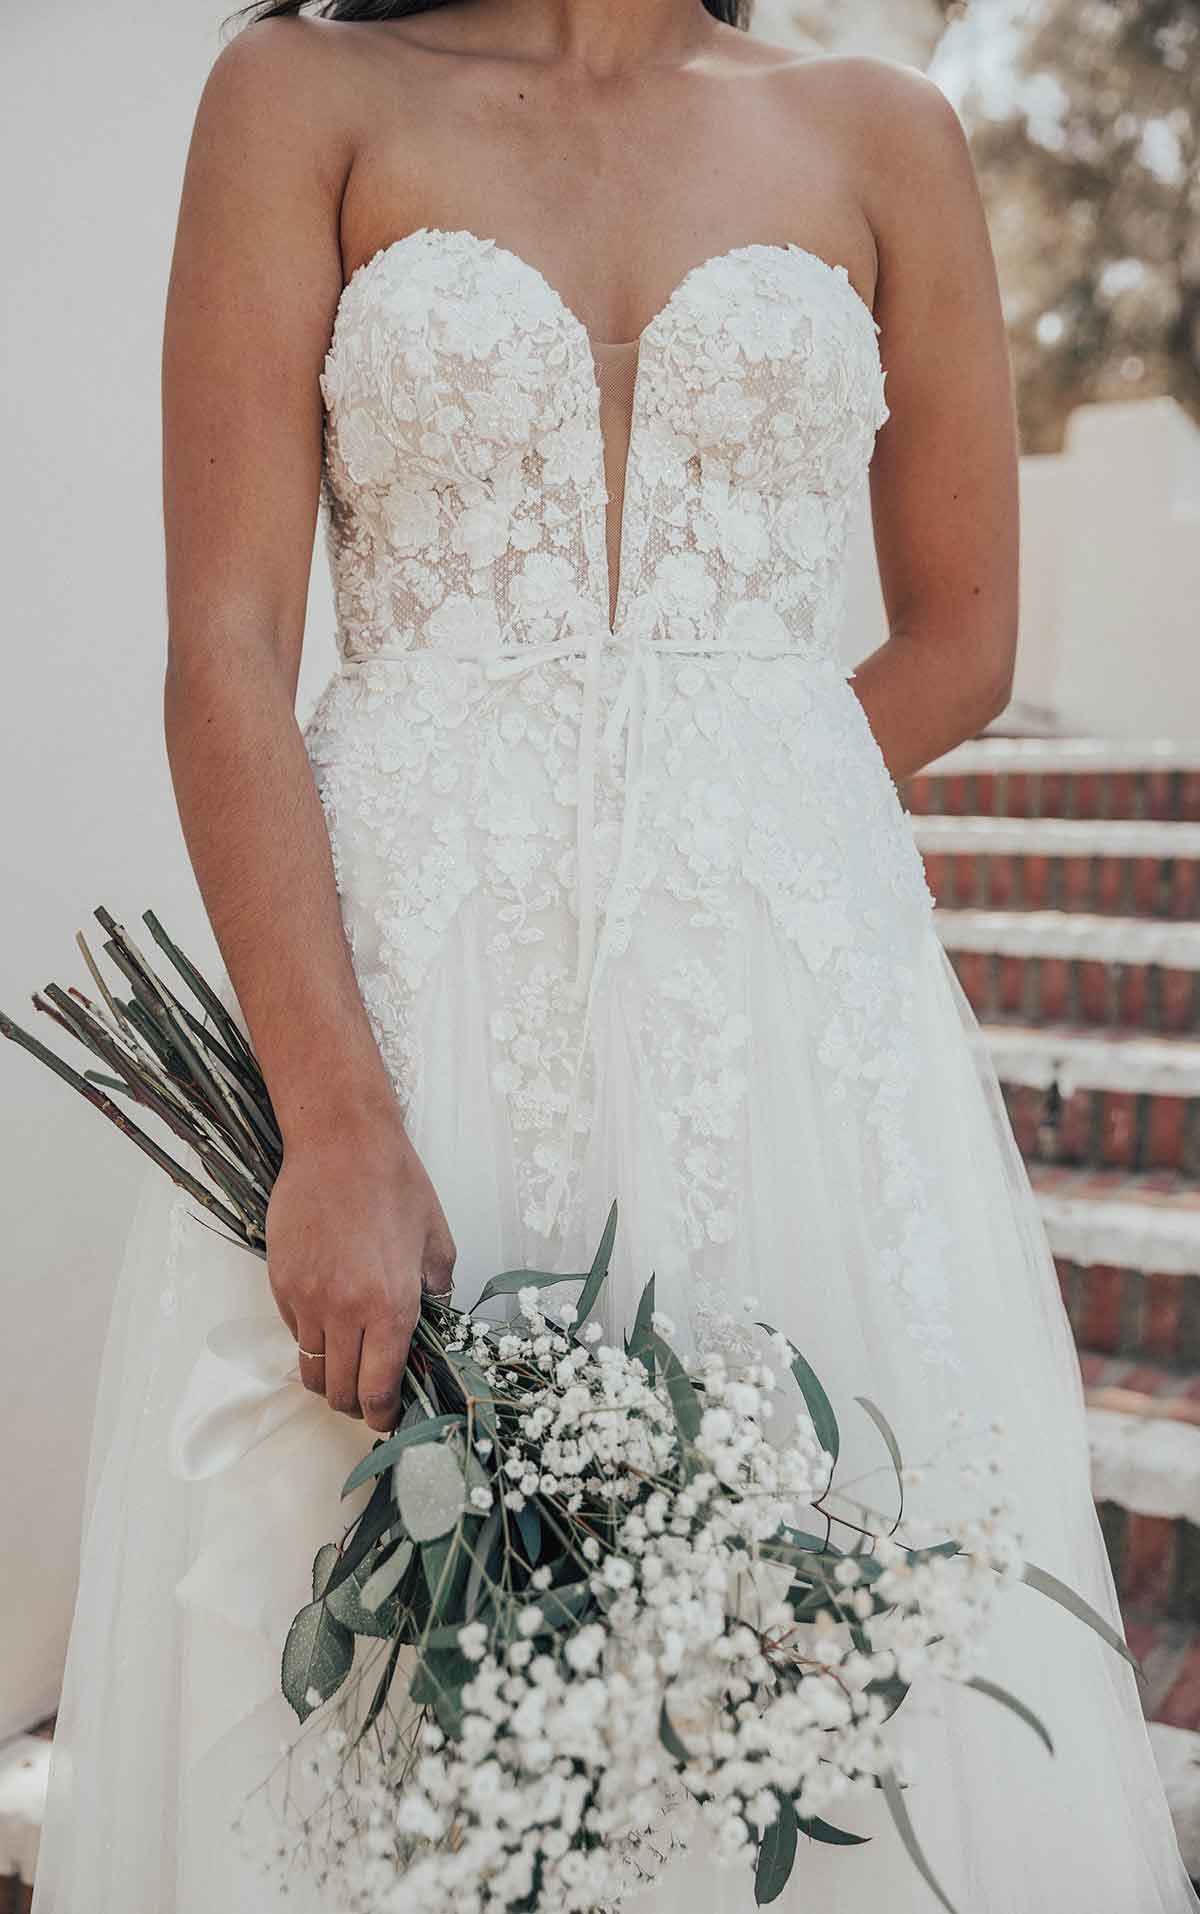 1358 Romantic Sweetheart Neckline Wedding Dress with Floral Details by Martina Liana